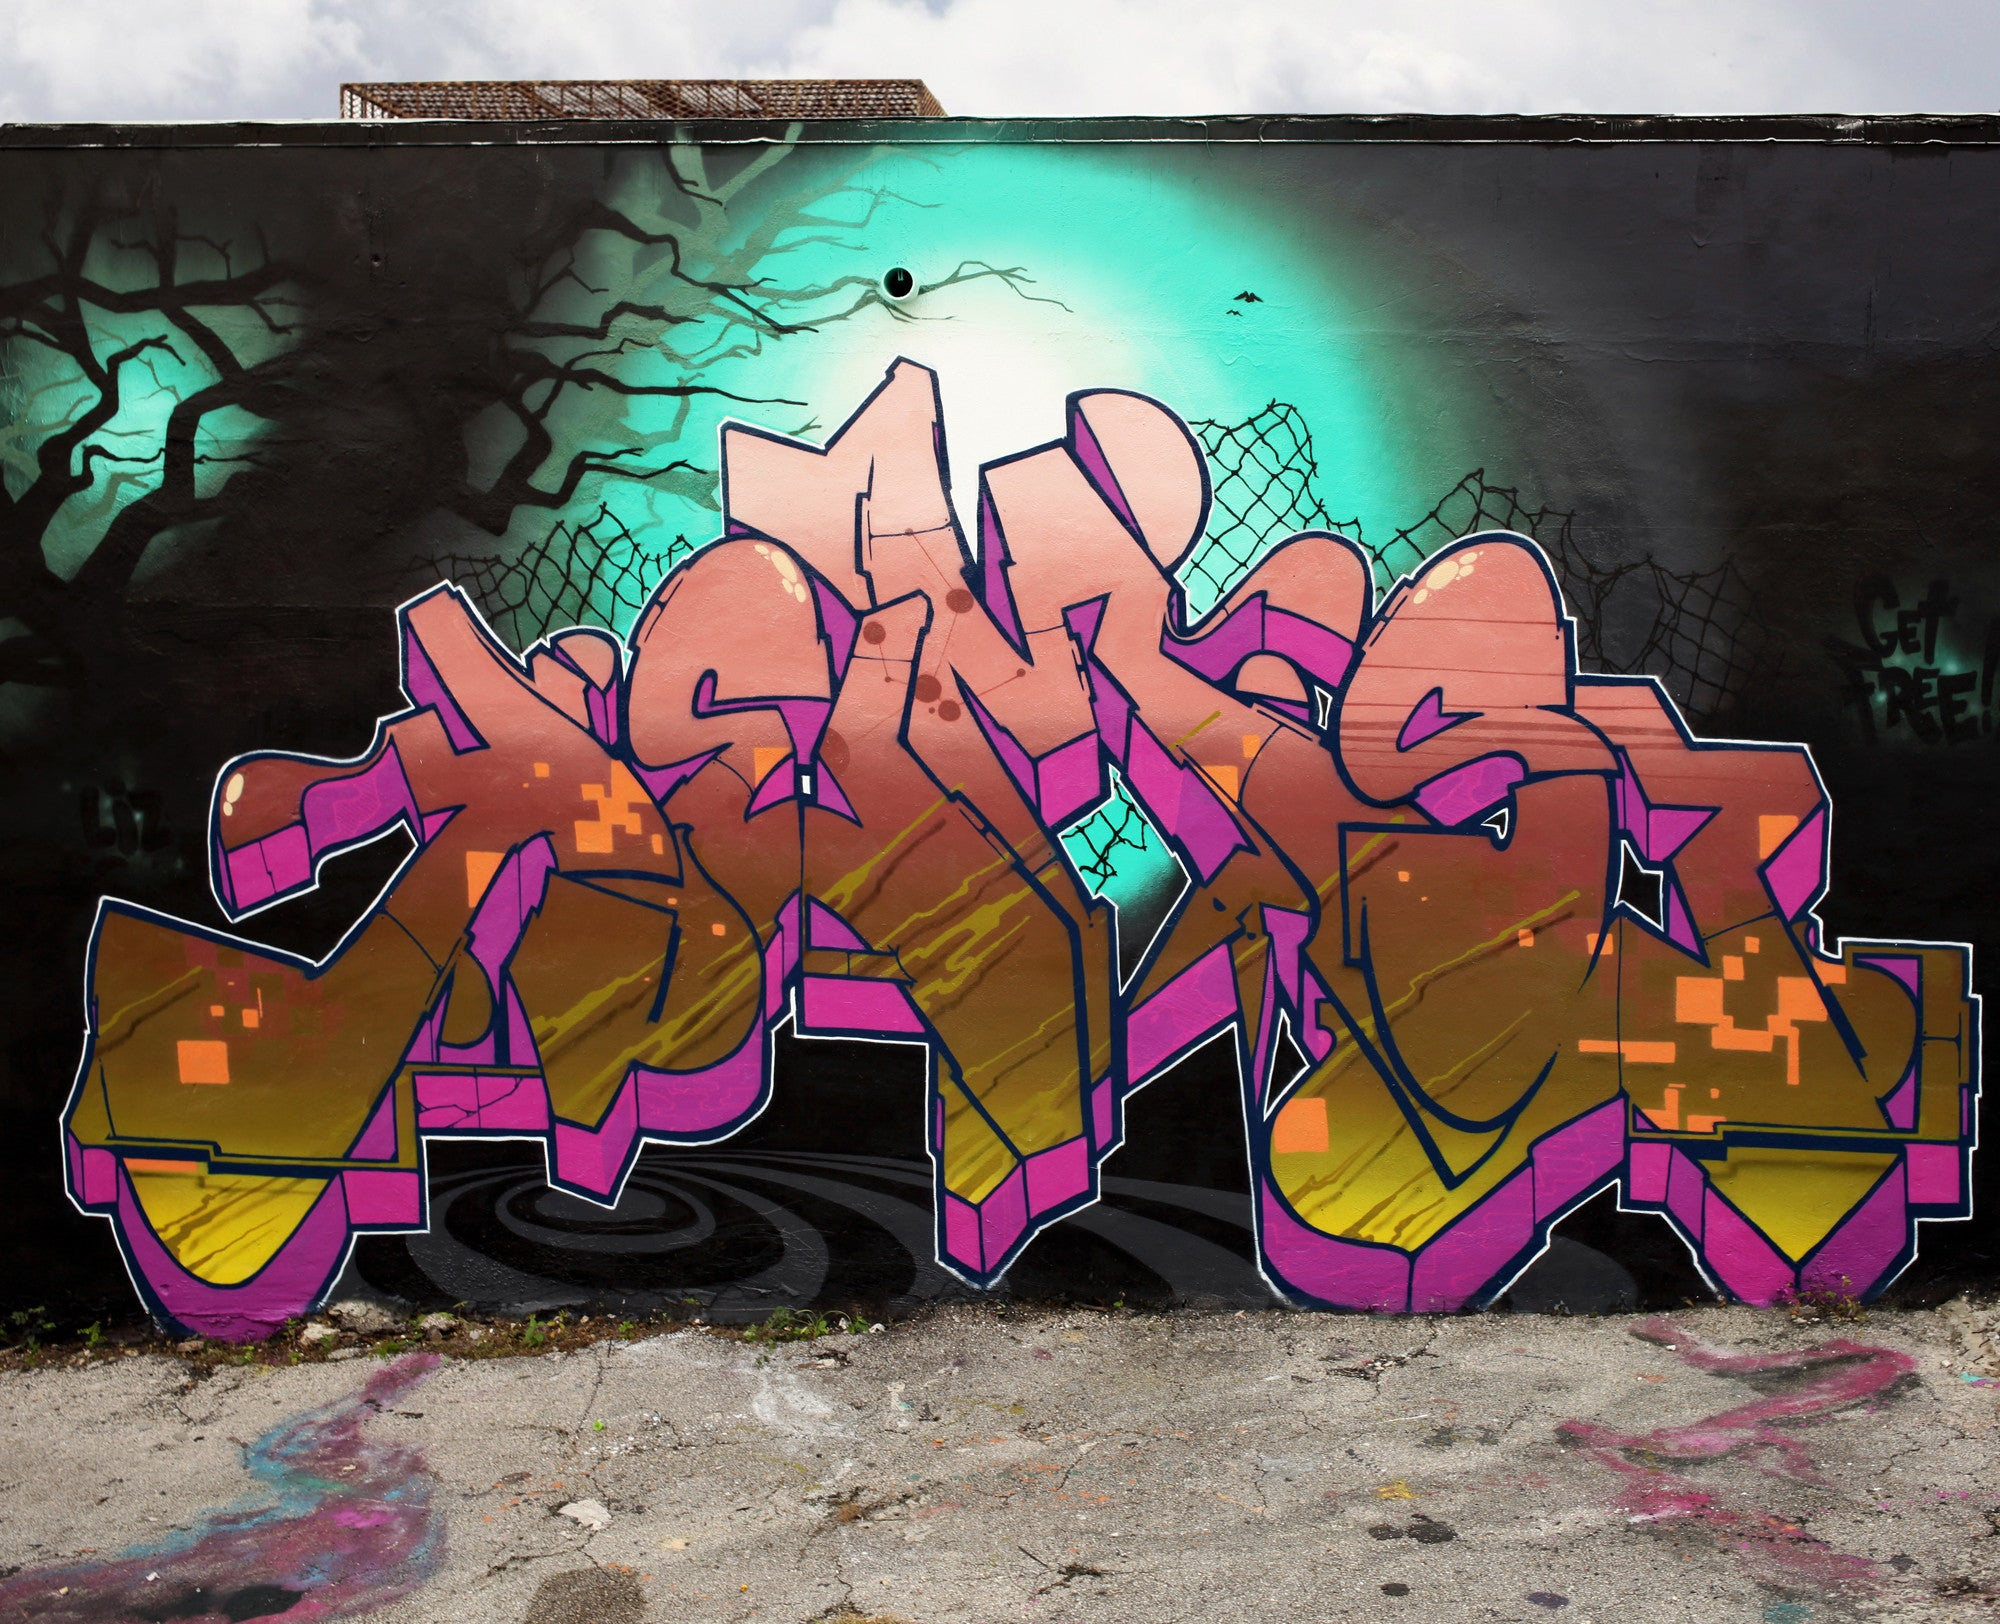 graffiti kems bandit of the day 123klan pink